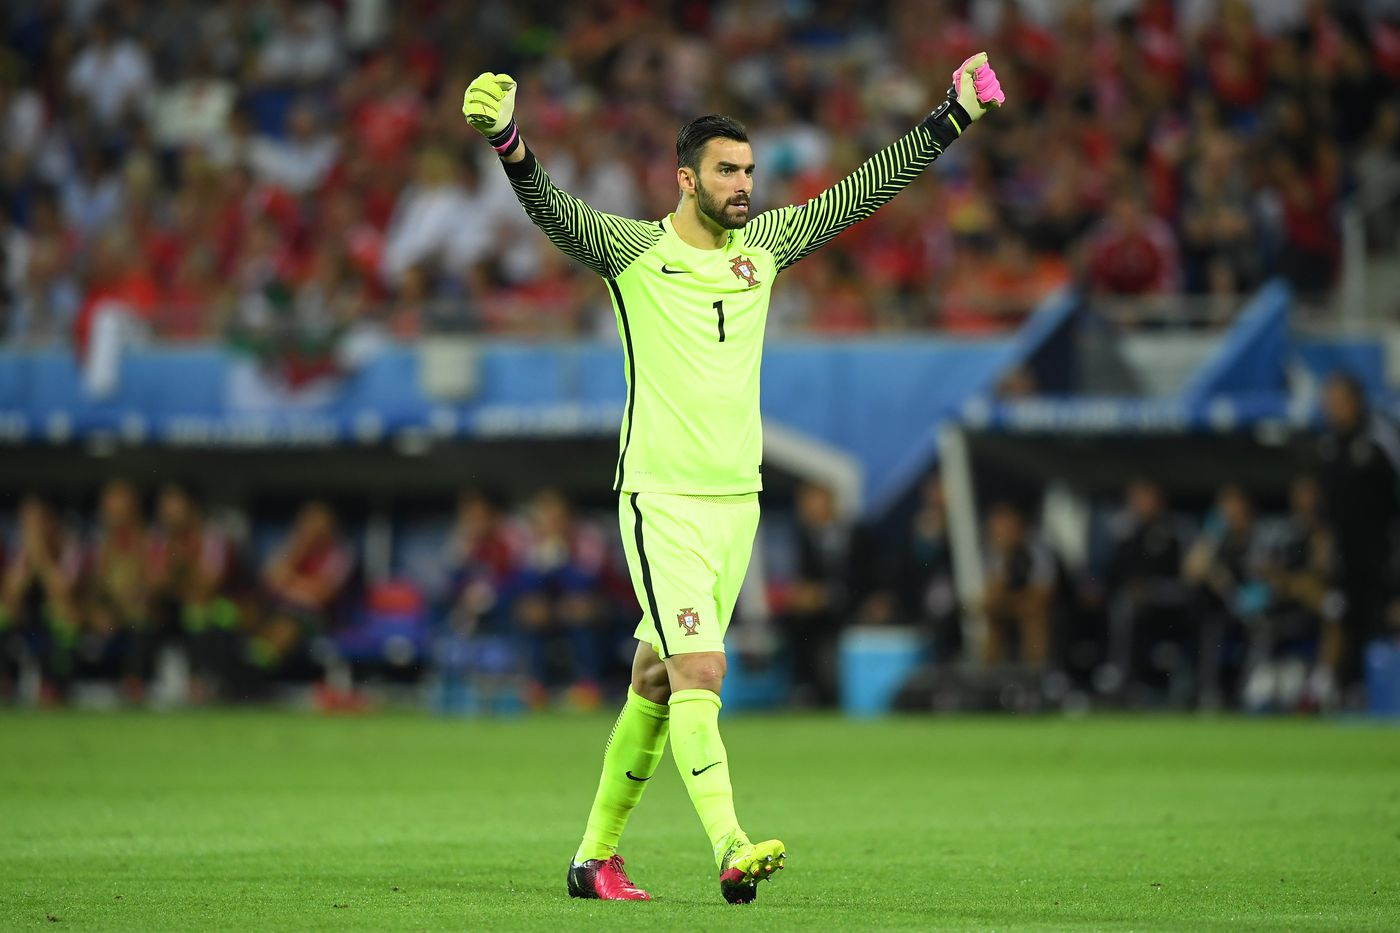 Goalkeeper Rui Patricio was Portugal s most important player in